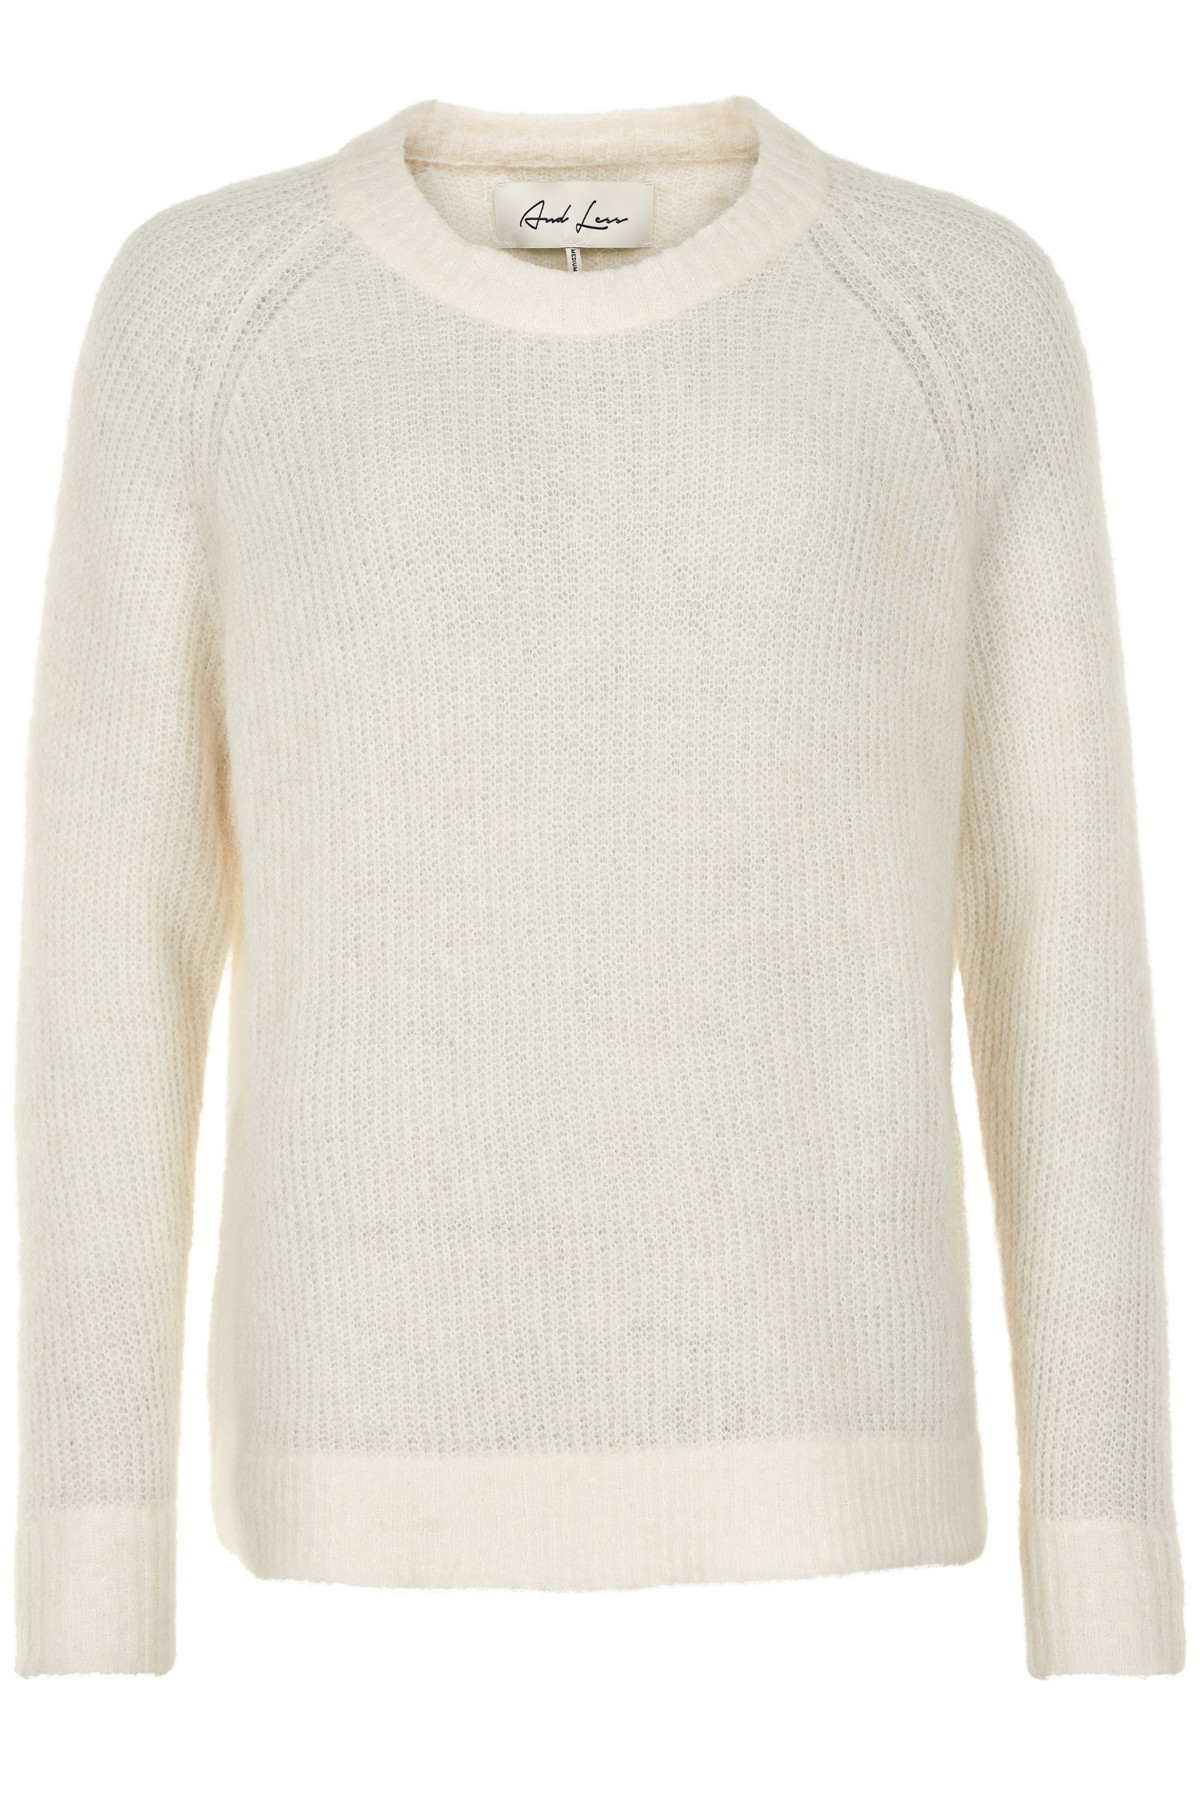 Image of   AND LESS ALBAMBINA PULLOVER 5120208 (W. Allysum, XS)